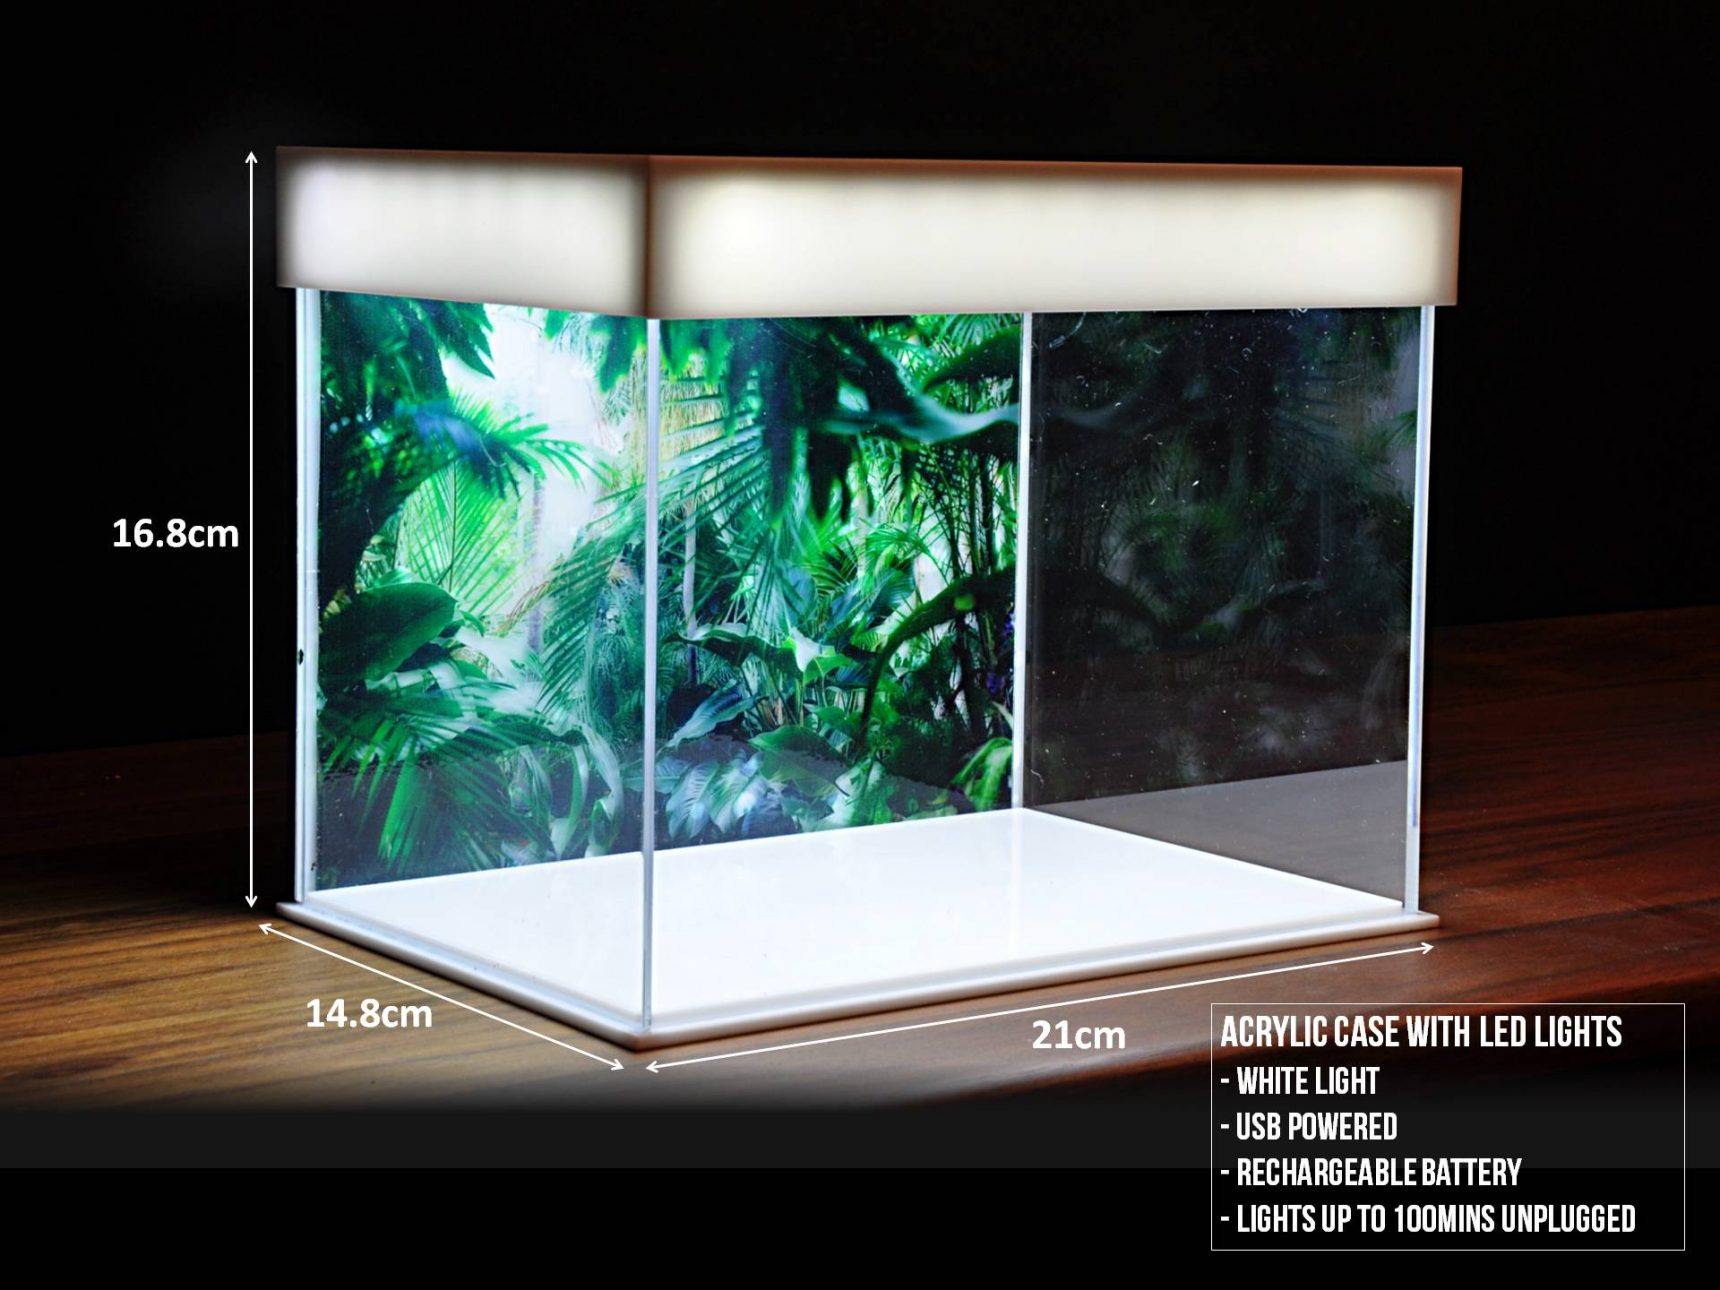 Miniature Stories 21cm Acrylic Case with LED Lights measurements